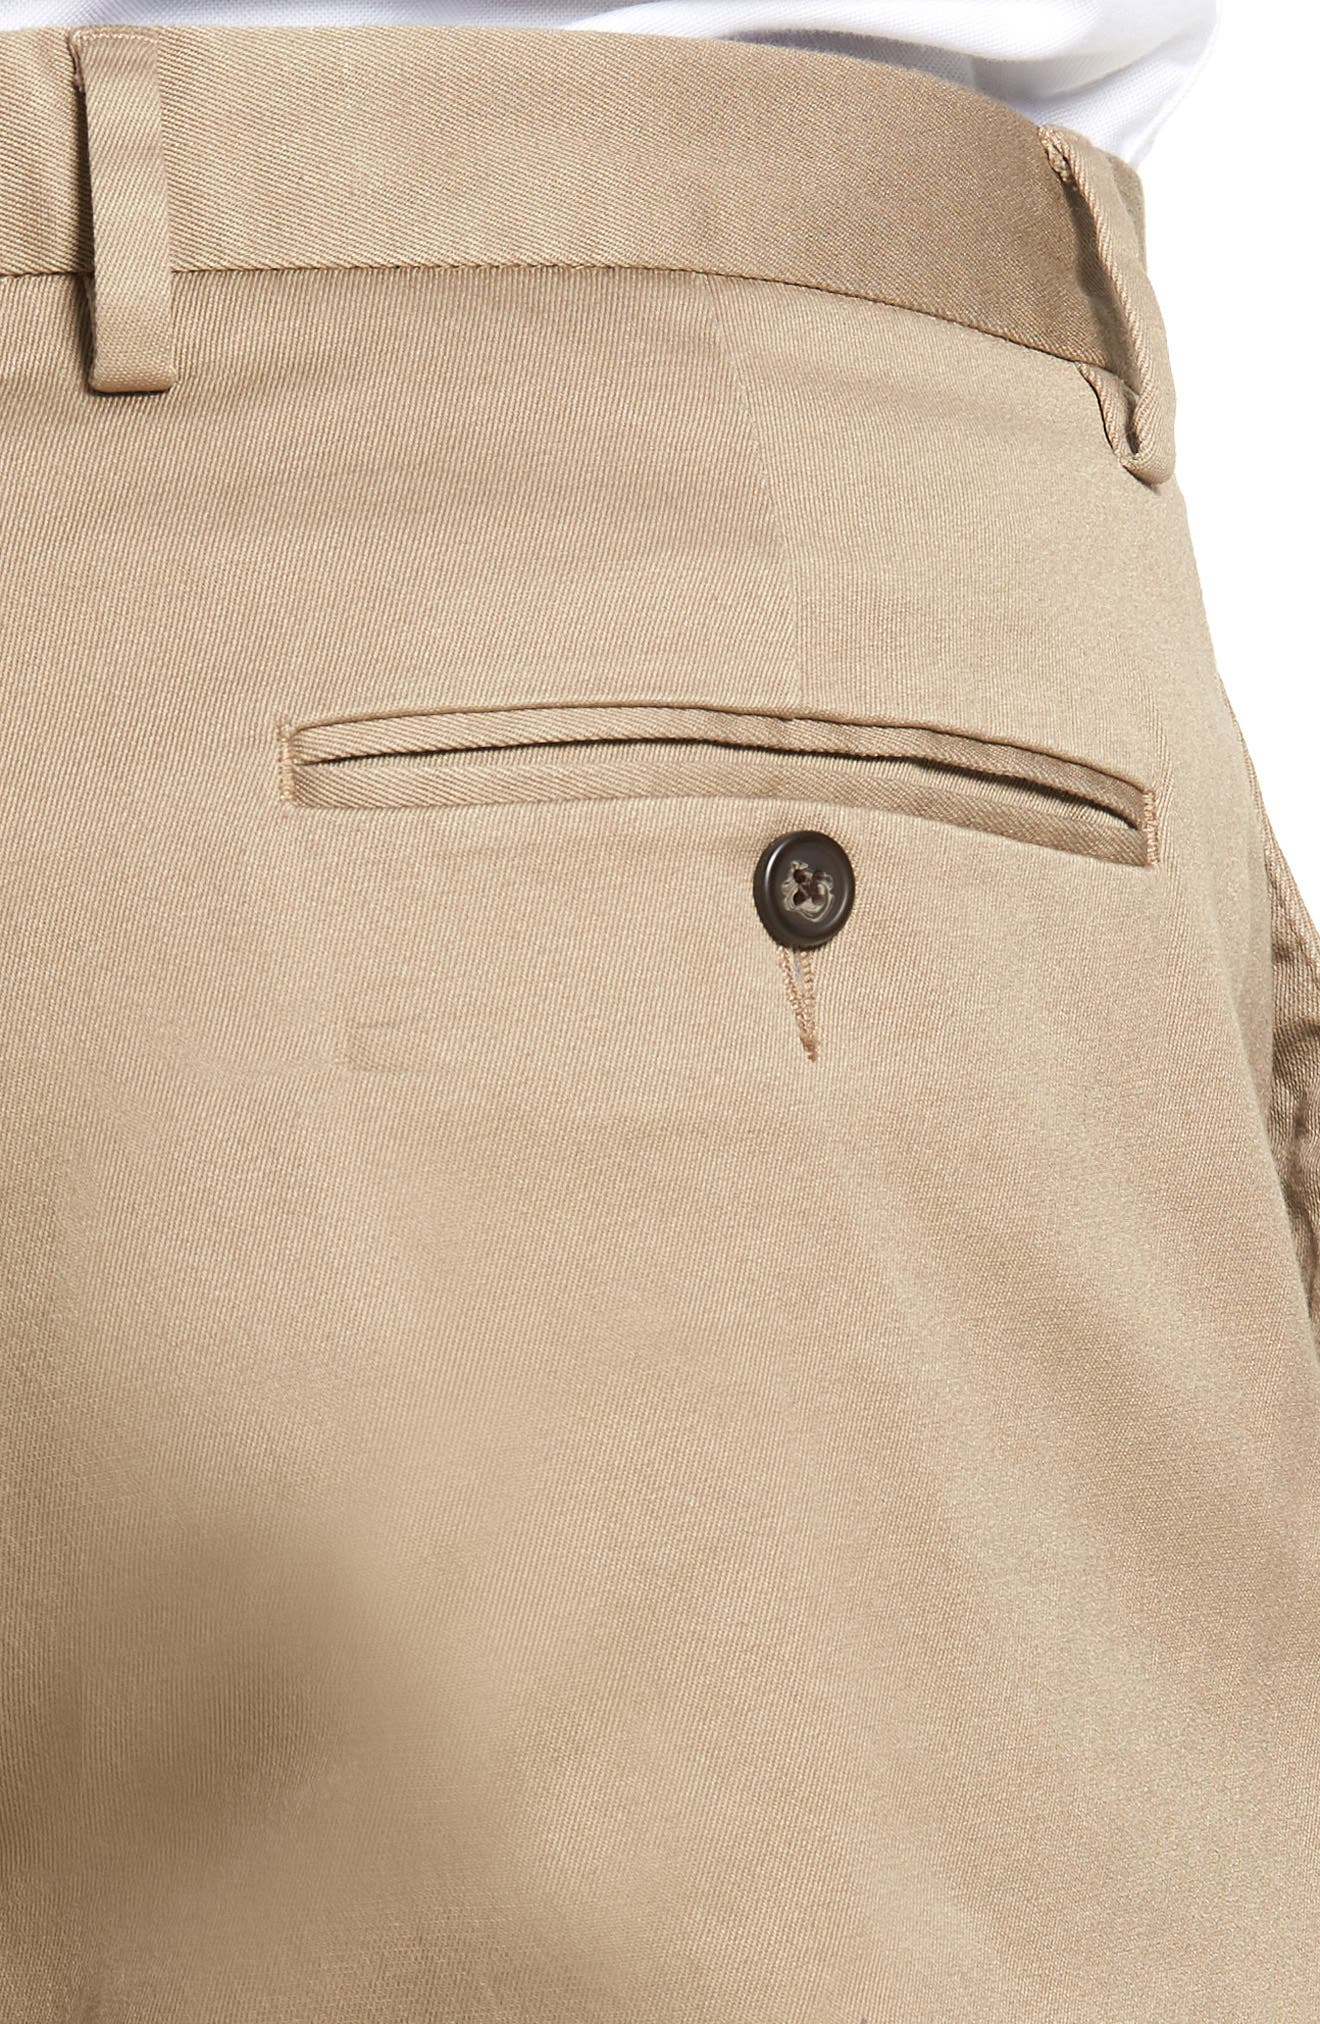 Ludlow Stretch Chino Pants,                             Alternate thumbnail 4, color,                             250